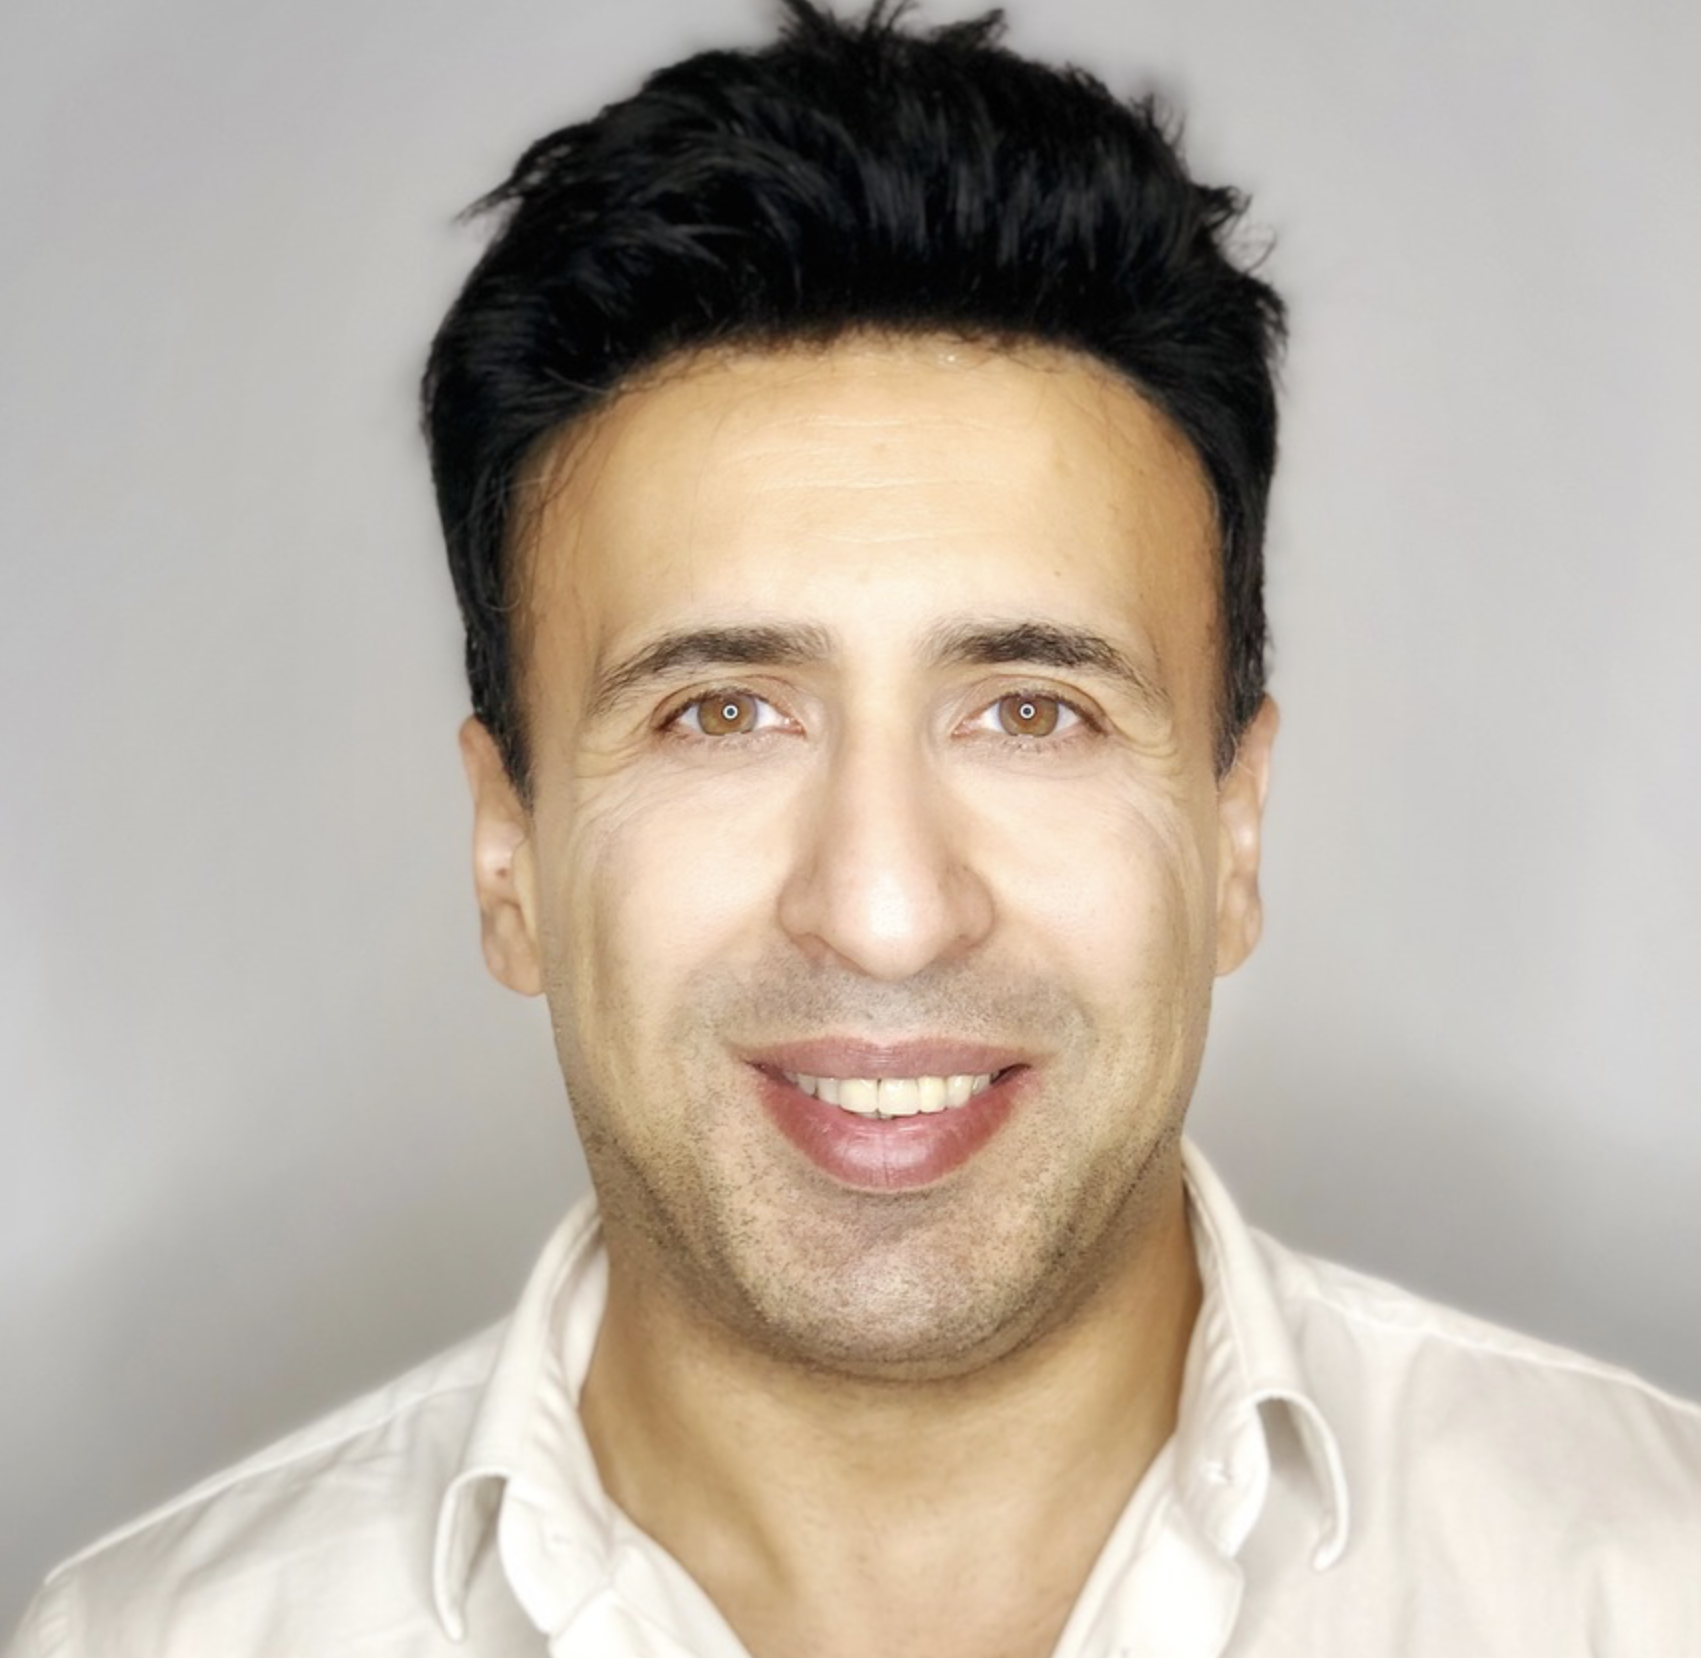 Profile Picture of Ramin Monfared before he is interviewed about Med Spa Cash Flow